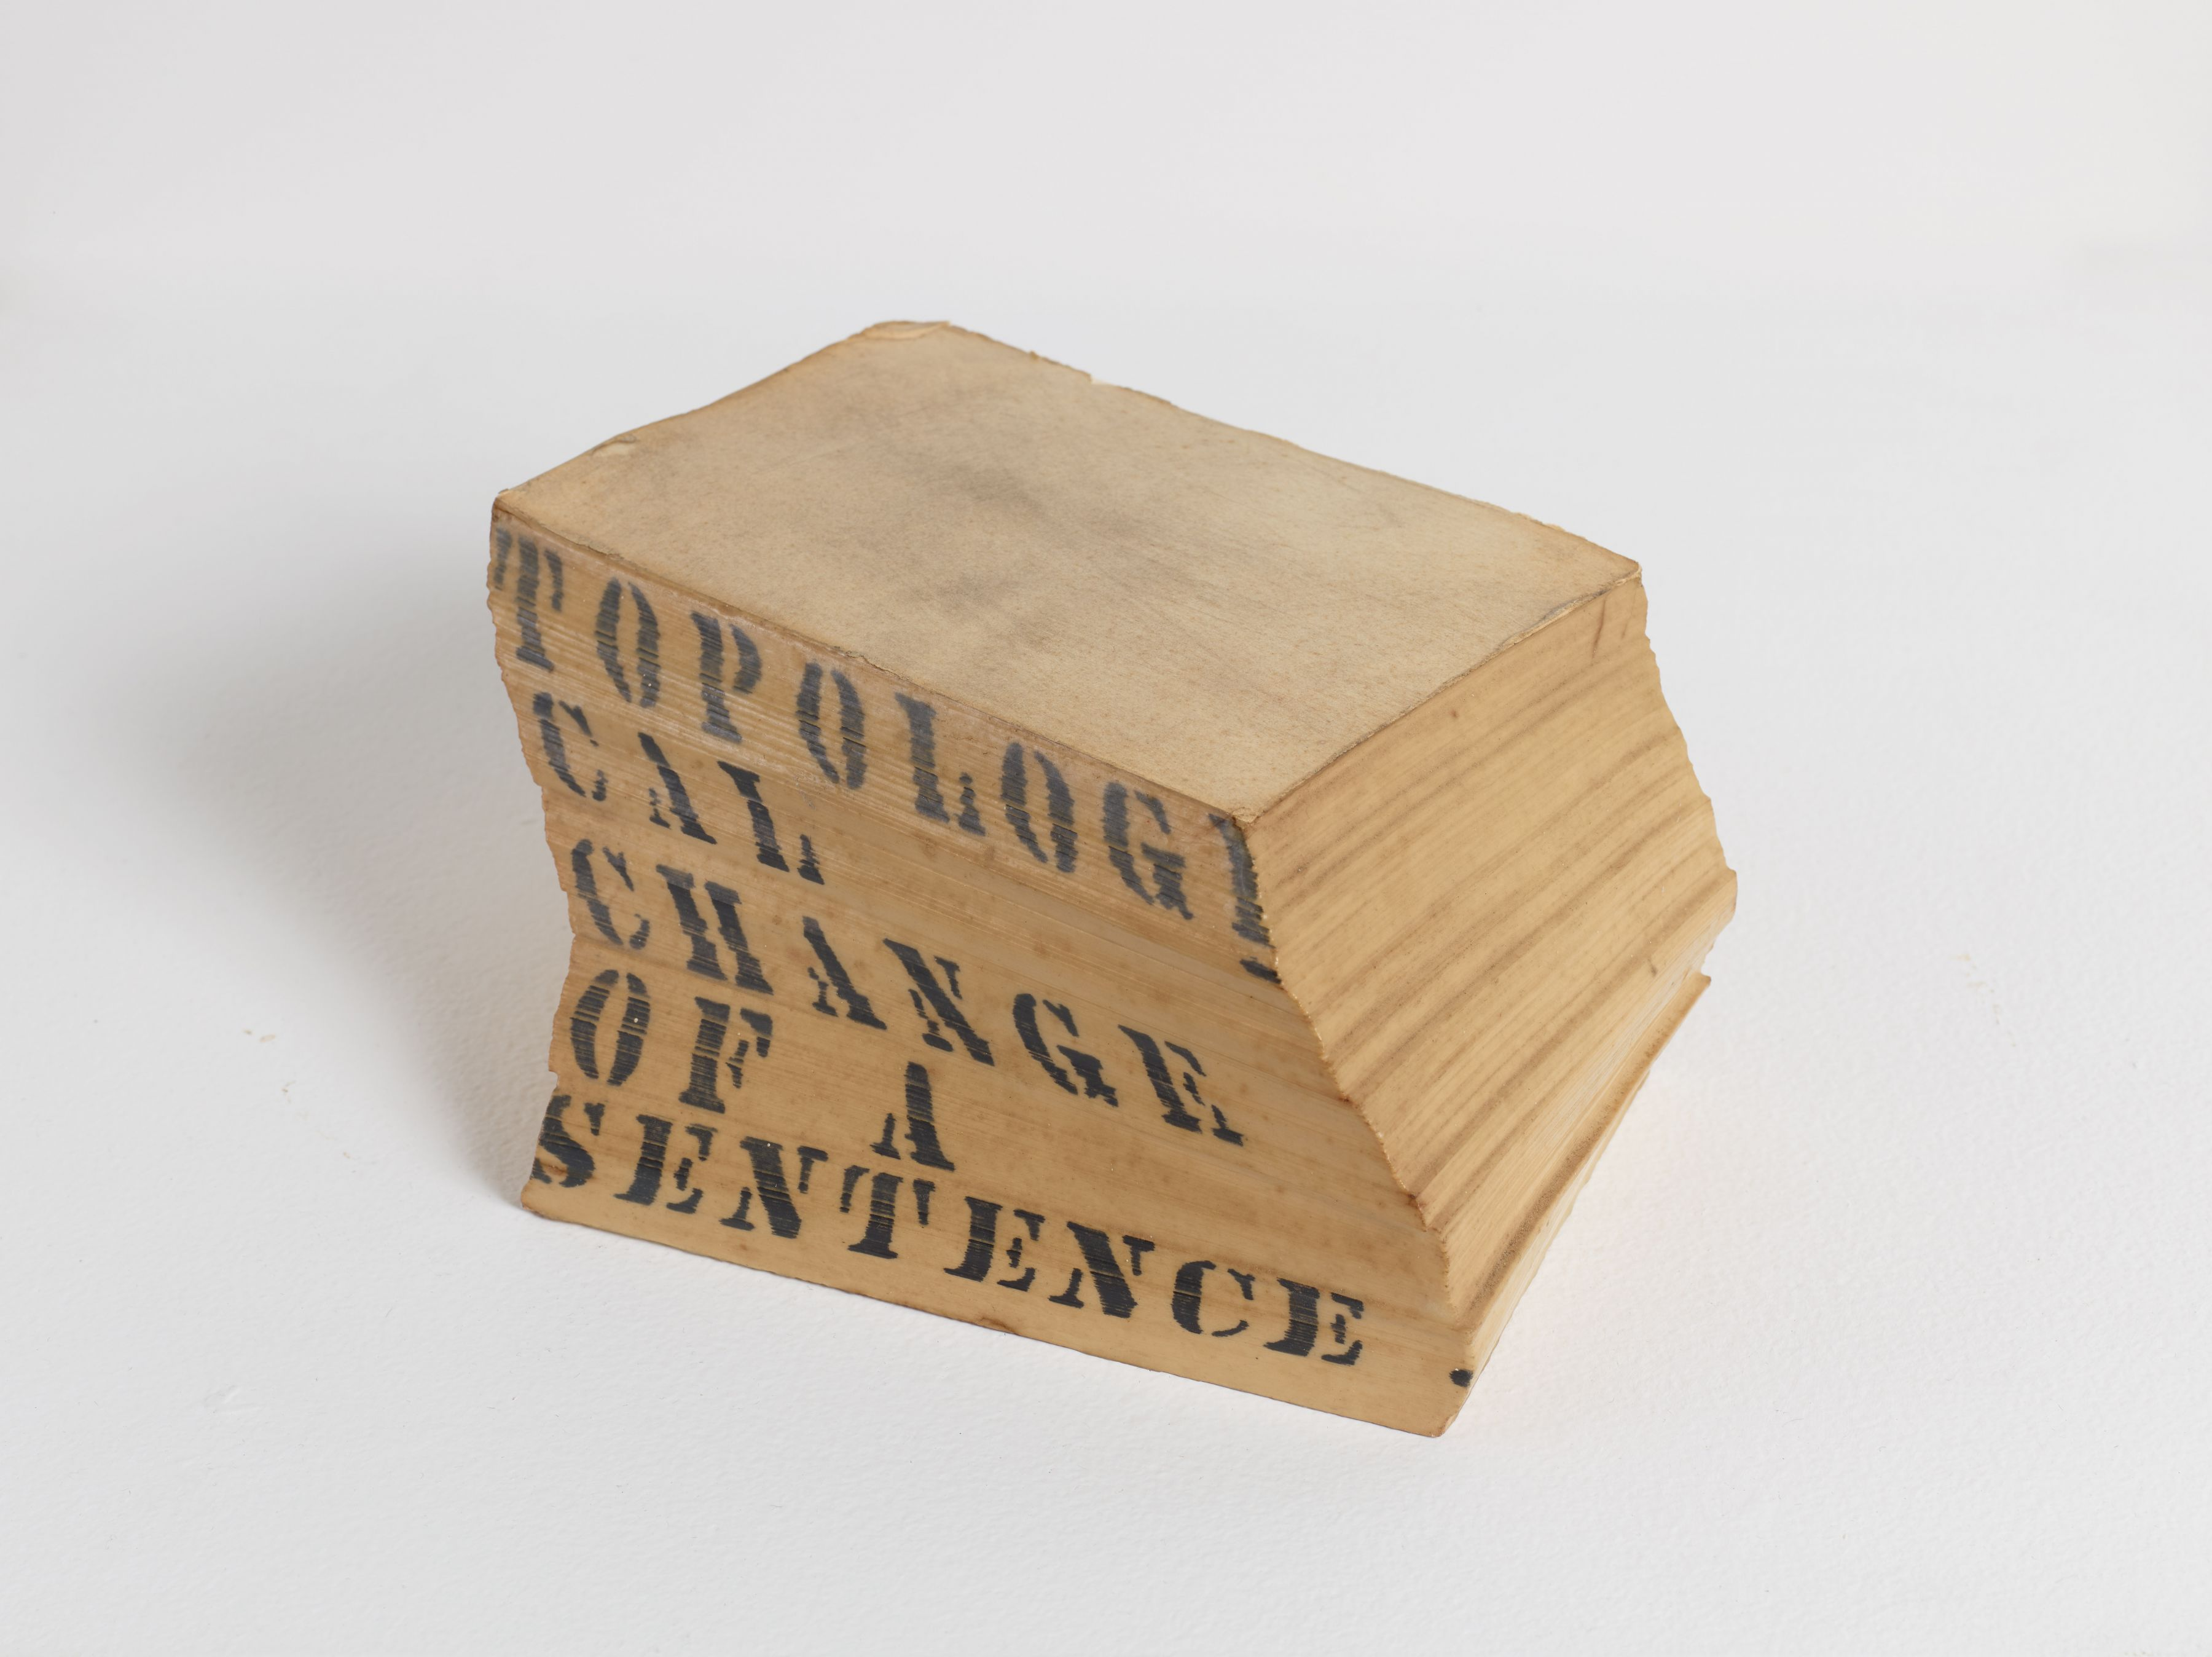 Luis Camnitzer, Topological Change of a Sentence, 1966